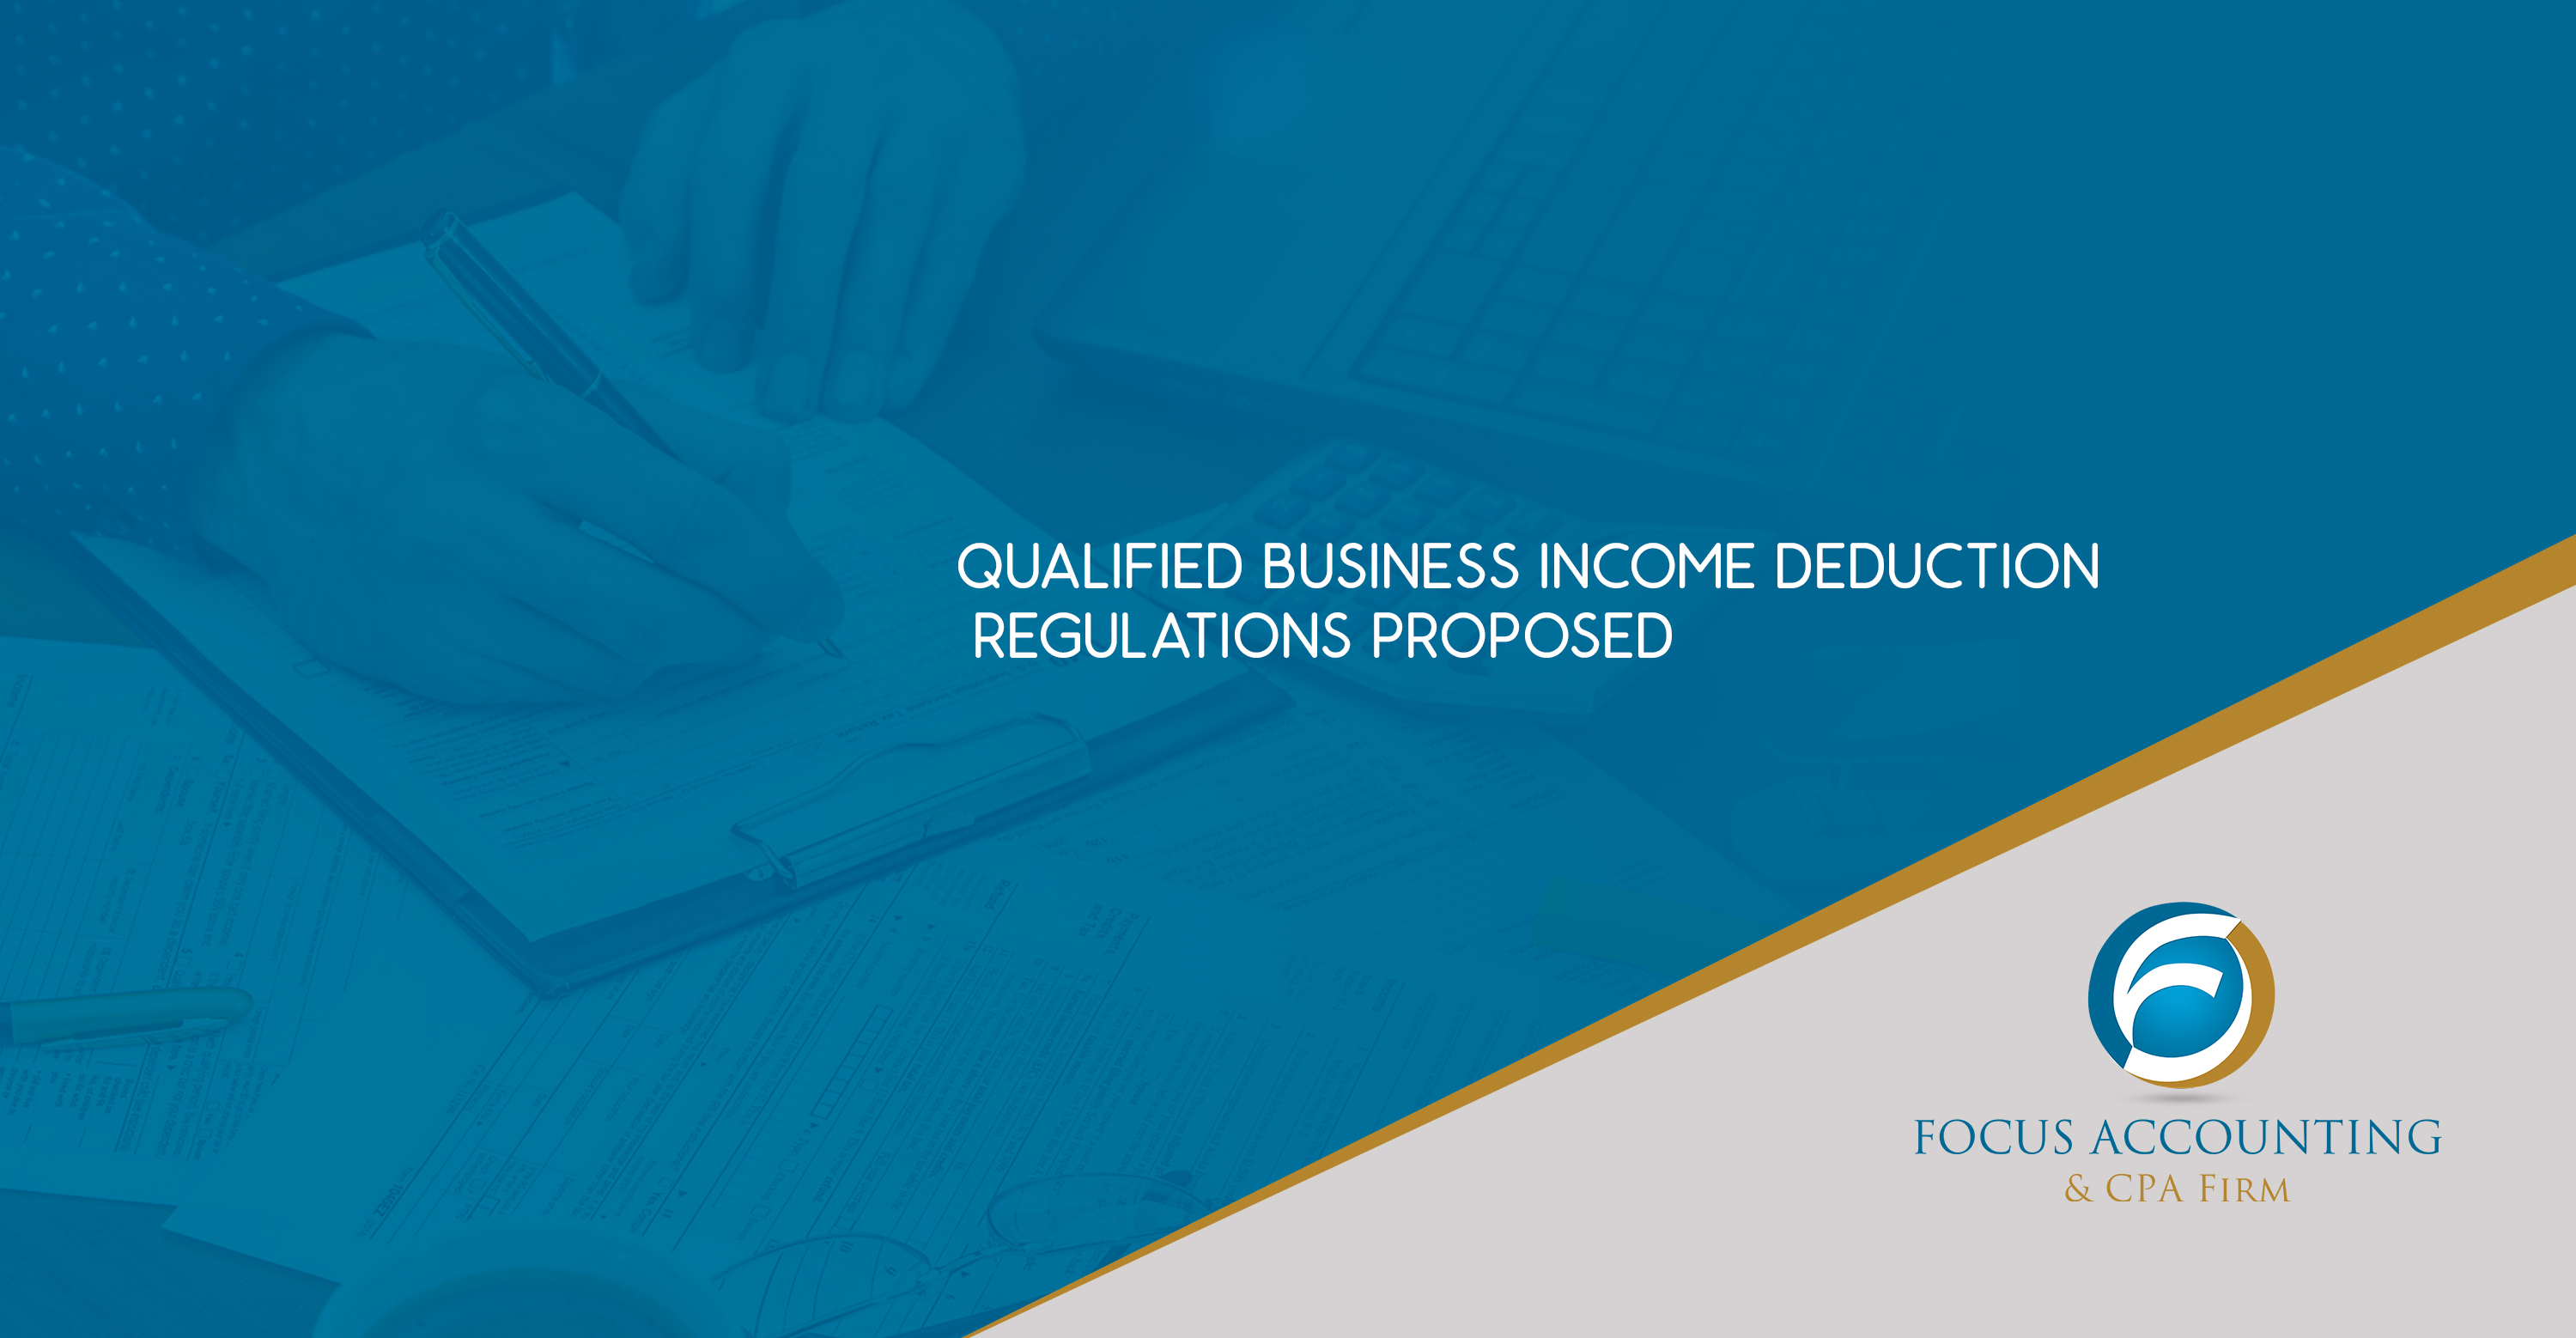 Qualified Business Income Deduction Regulations Proposed